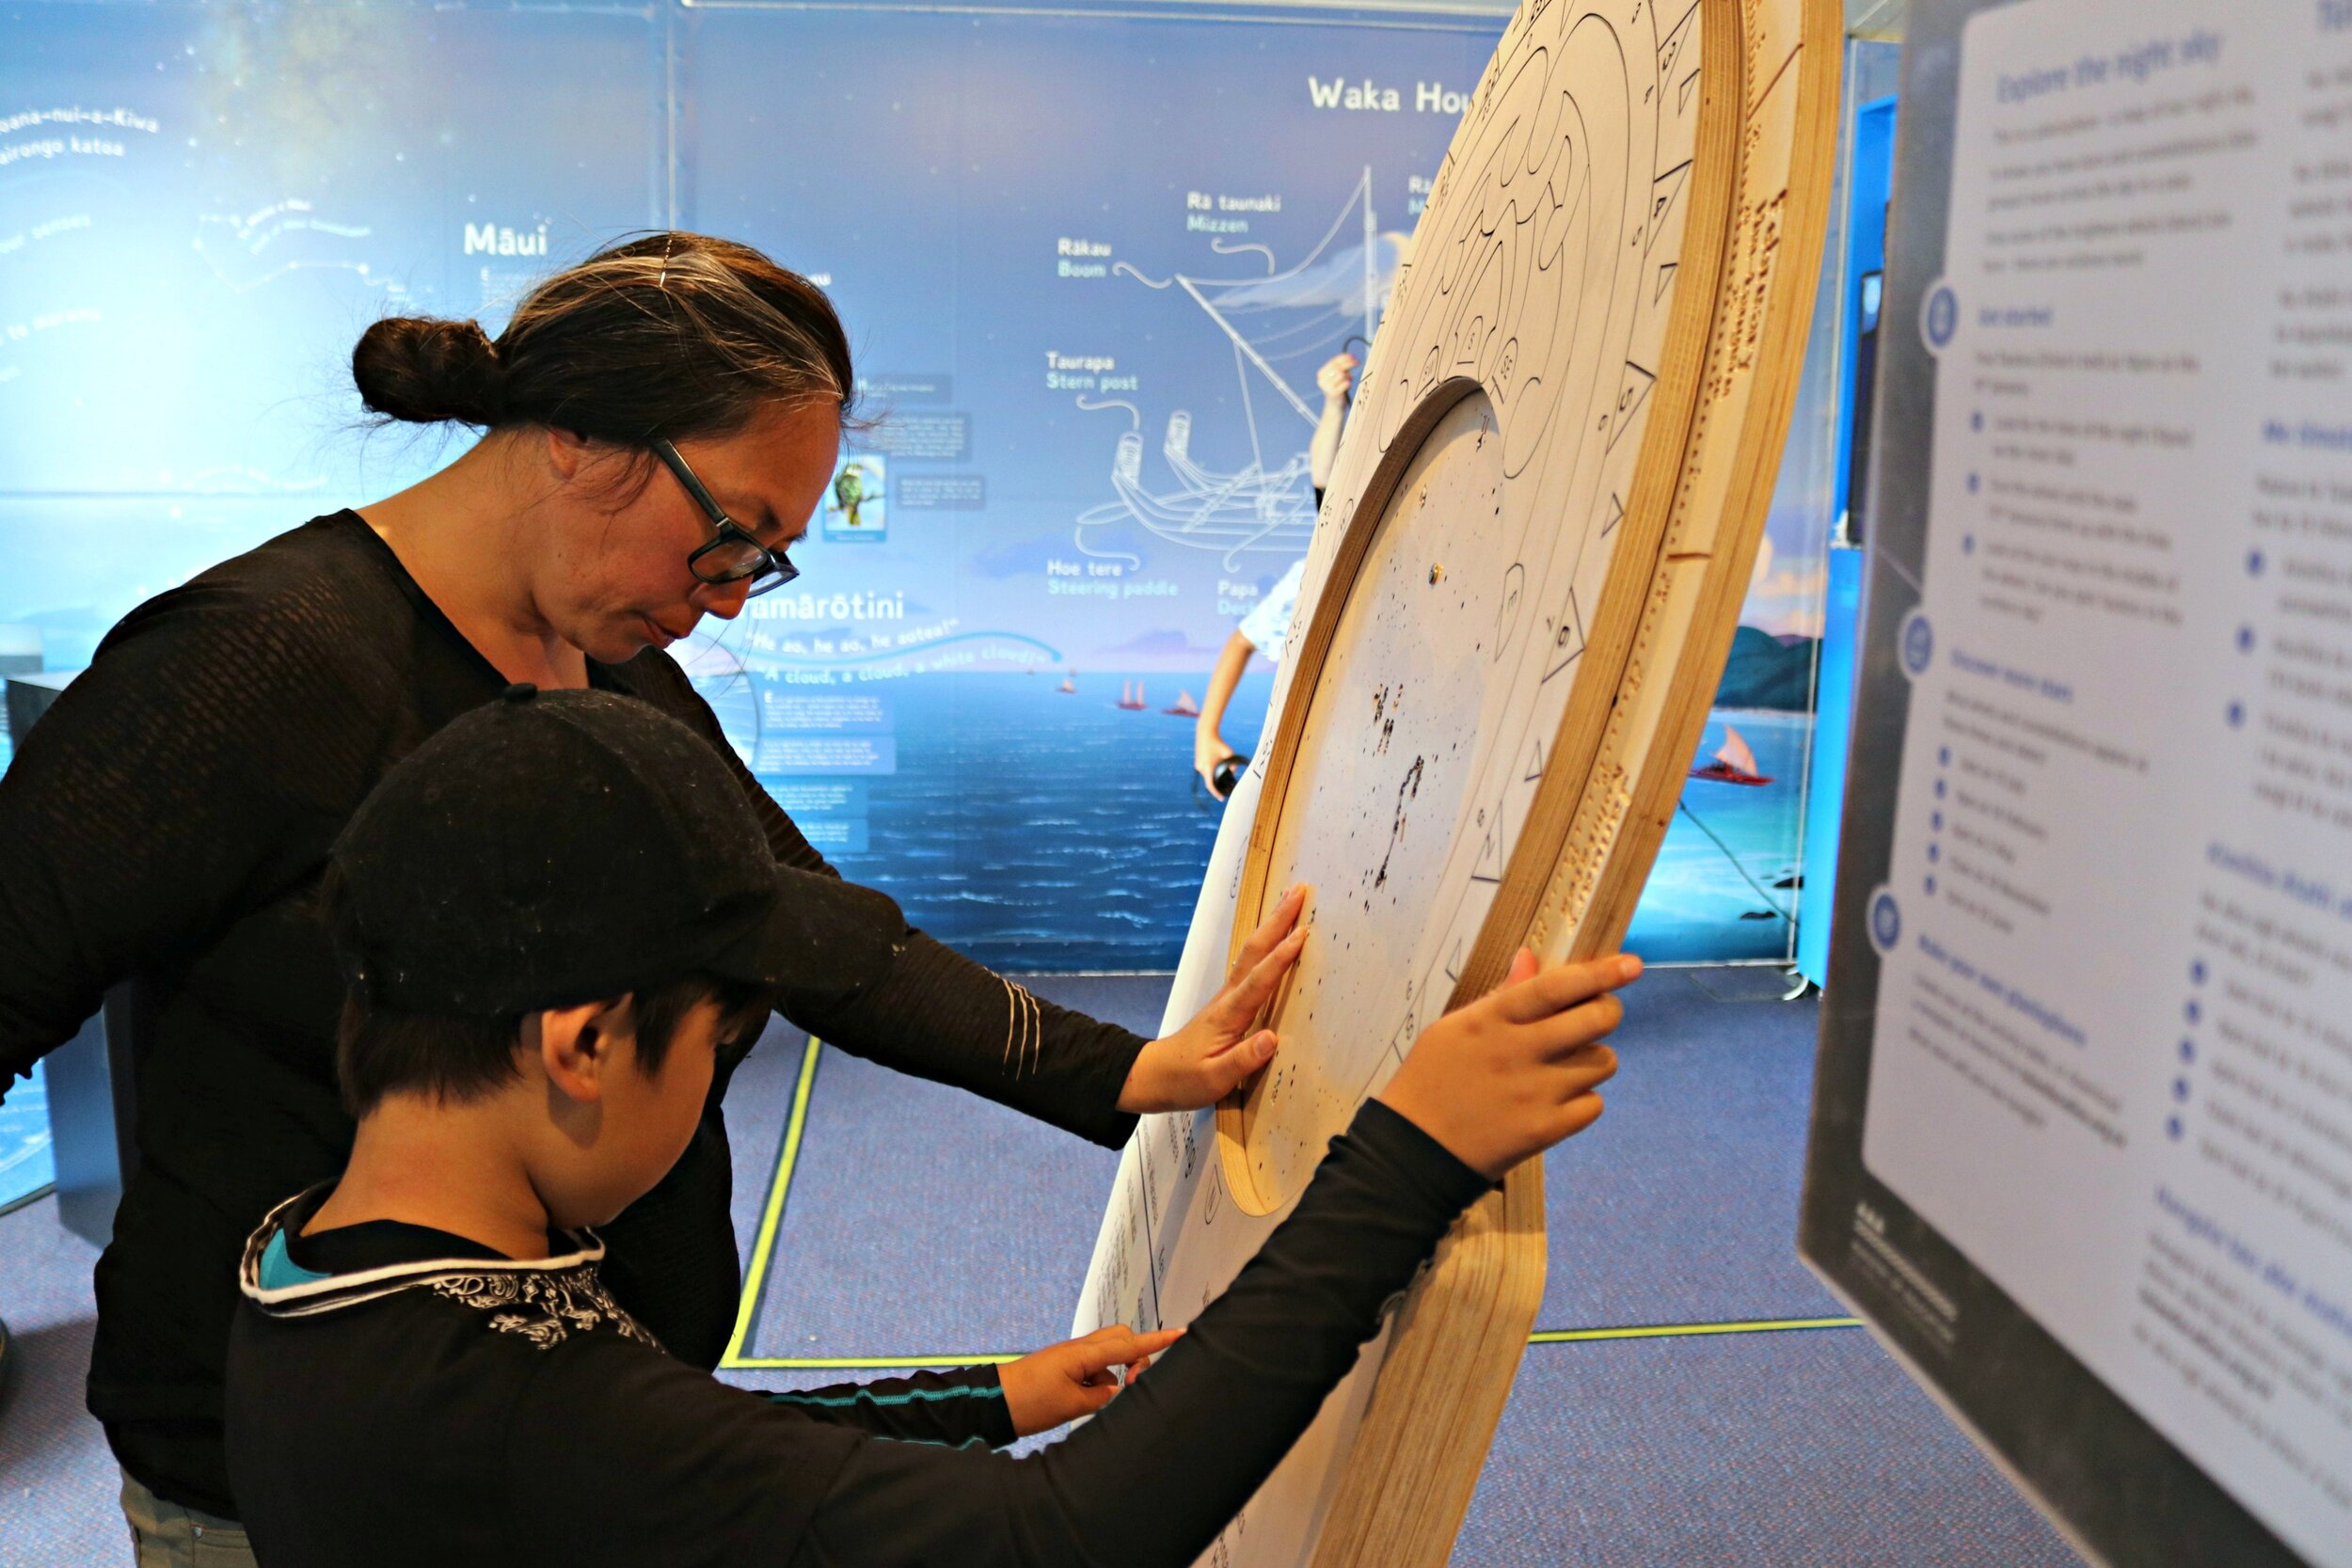 Learning with the planisphere at the roadshow in Uawa - Tolaga